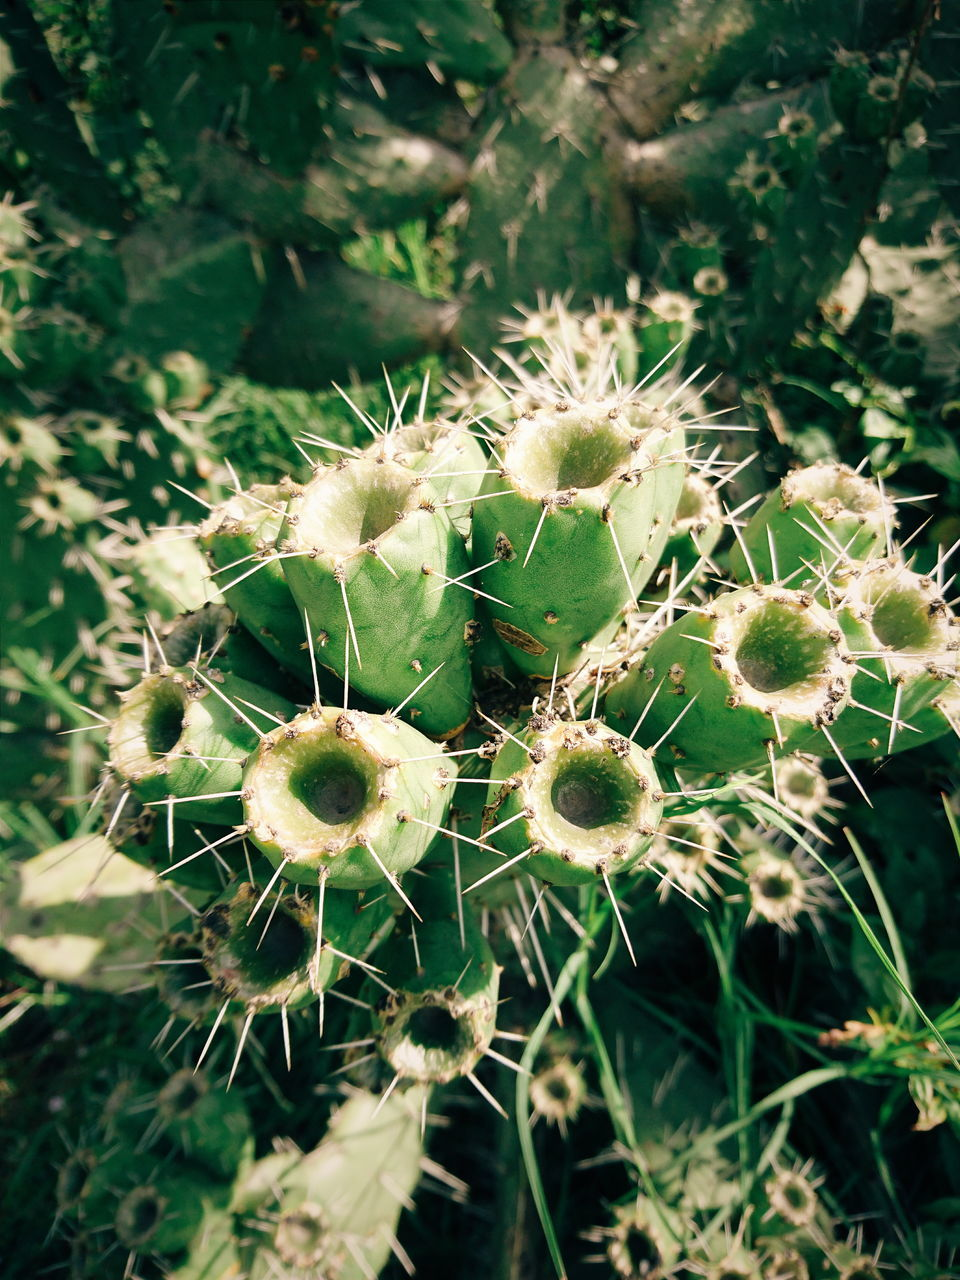 cactus, growth, thorn, nature, plant, spiked, day, outdoors, no people, green color, focus on foreground, uncultivated, close-up, beauty in nature, prickly pear cactus, fragility, flower, freshness, flower head